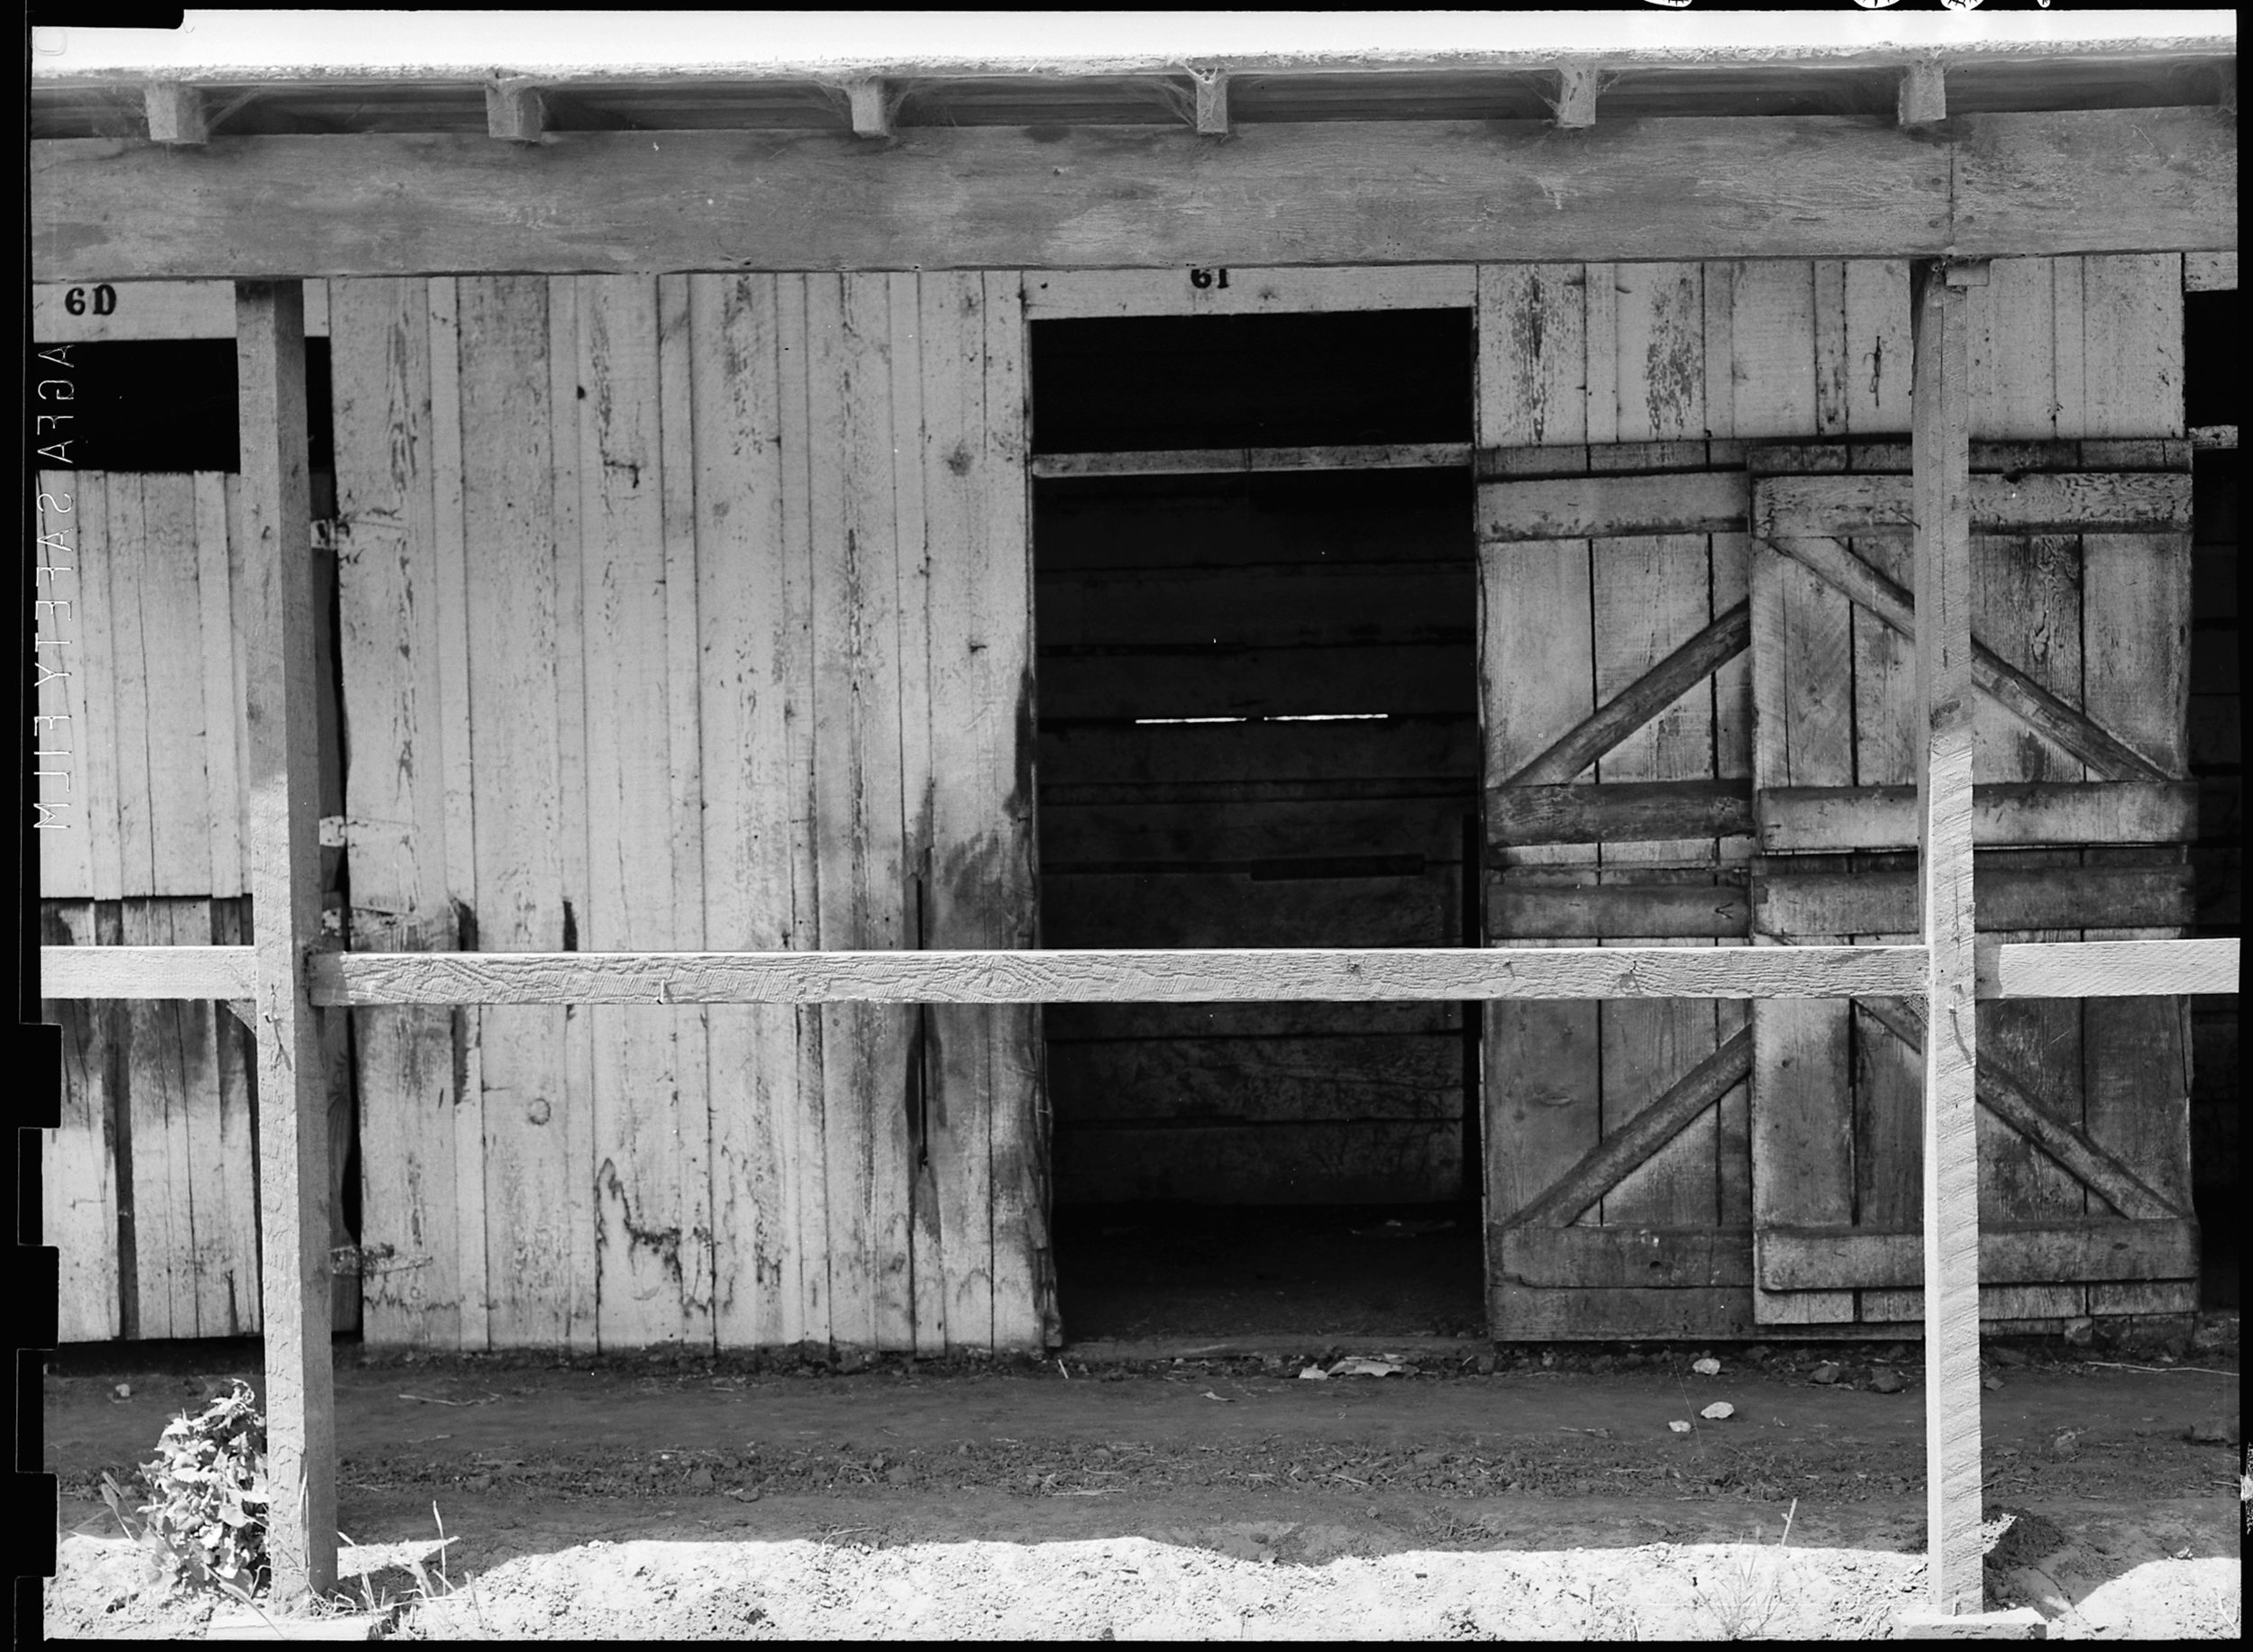 June 16, 1942 — San Bruno, California. A near- view of a horse stall left from days when what is now Tanforan Assembly center, was the famous Tanforan Race Track. Most of these stalls have been converted into family living quarters for evacuated Japanese.